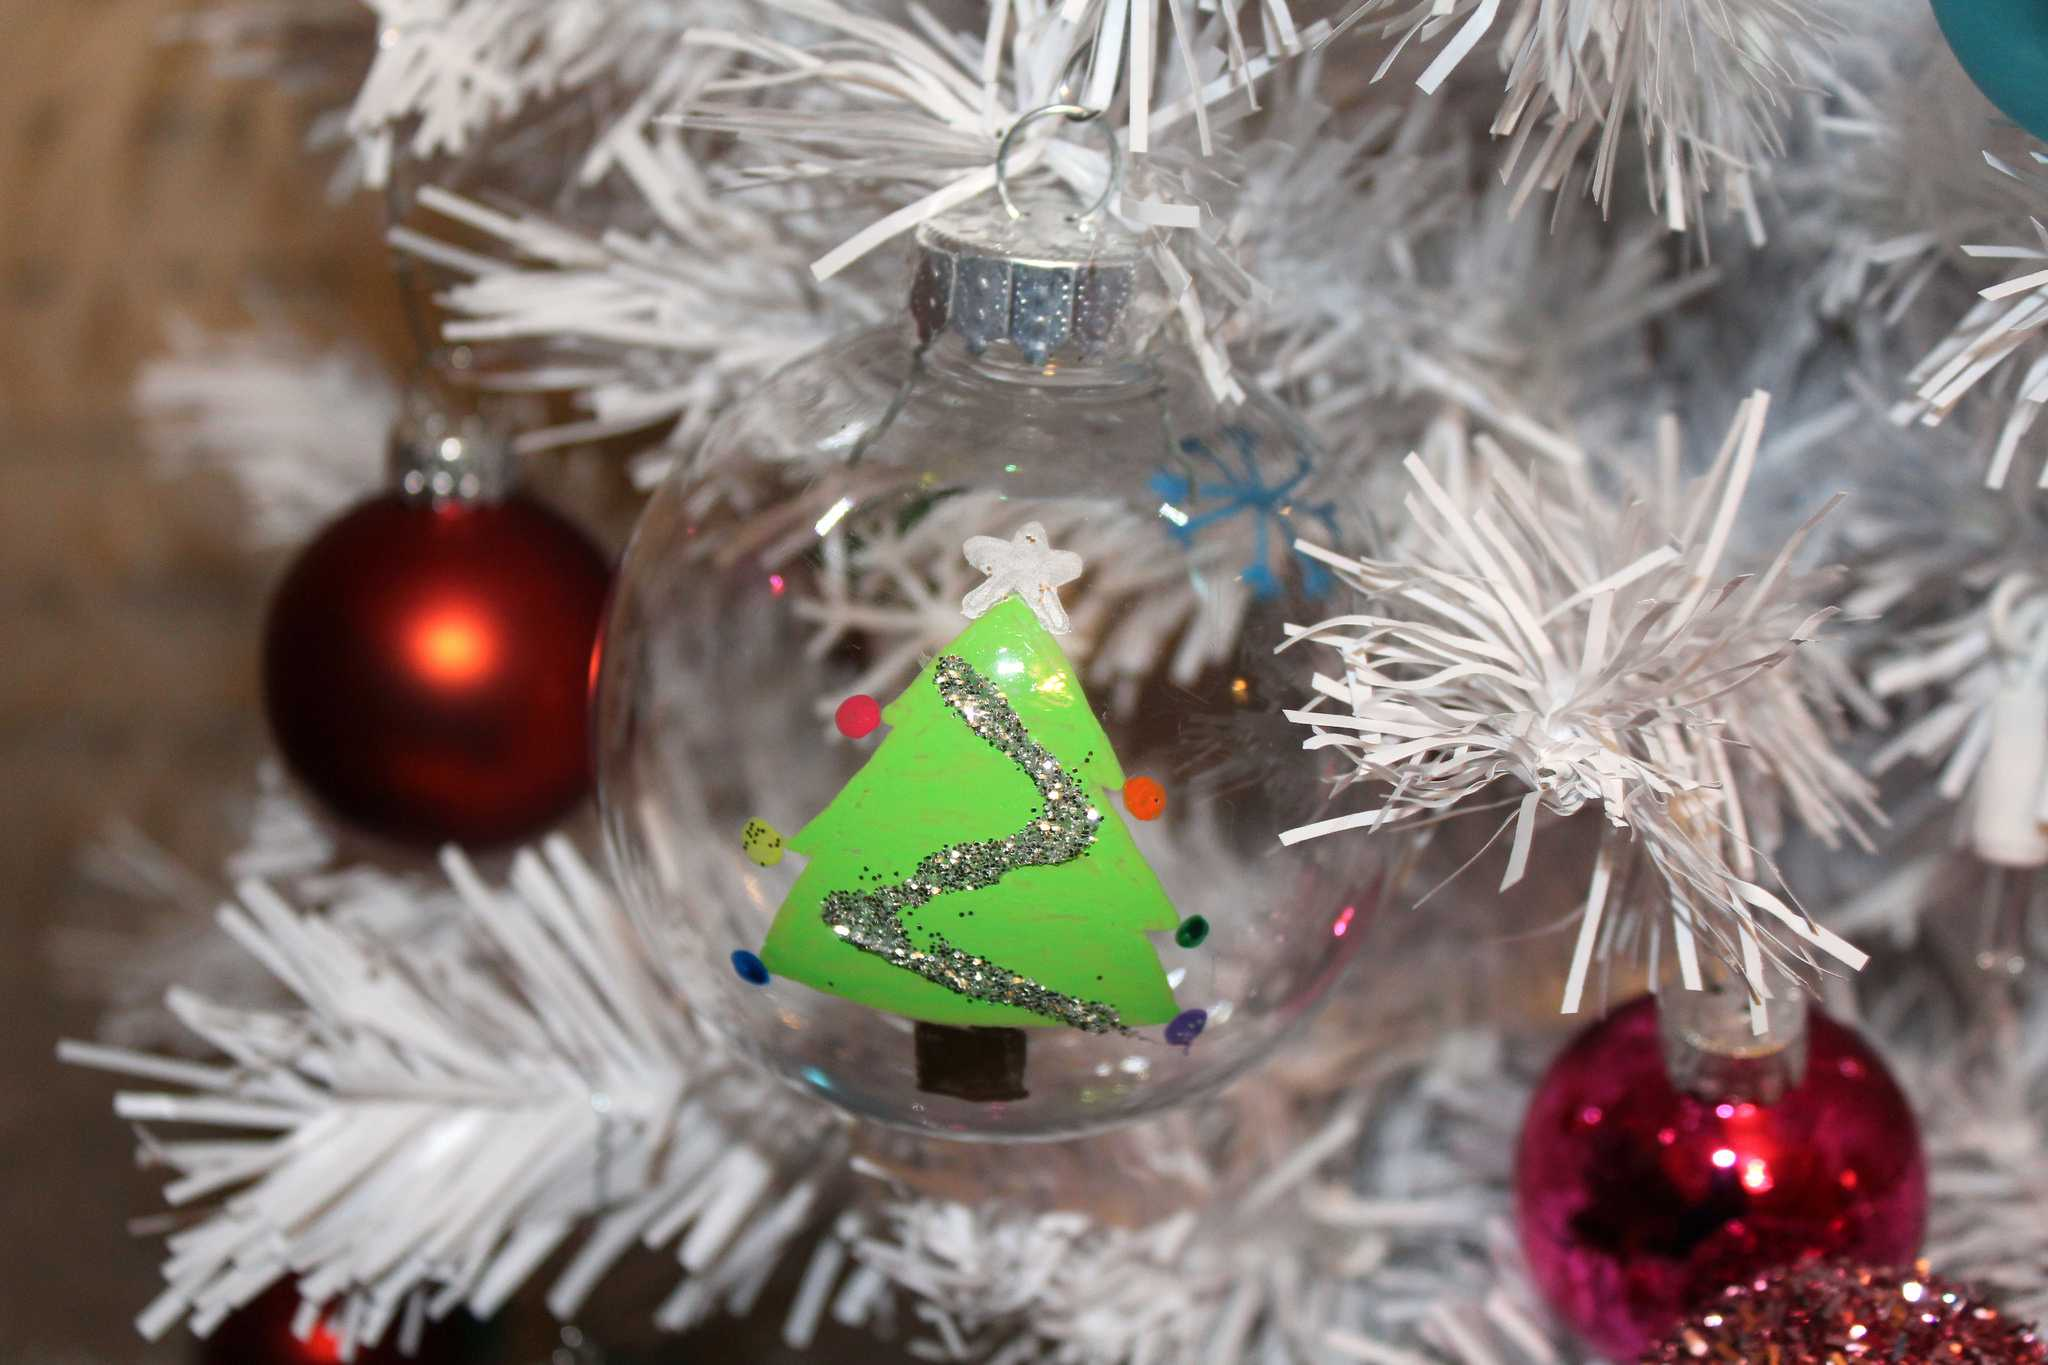 A hand painted ornament. Photo by Ezra Morales.